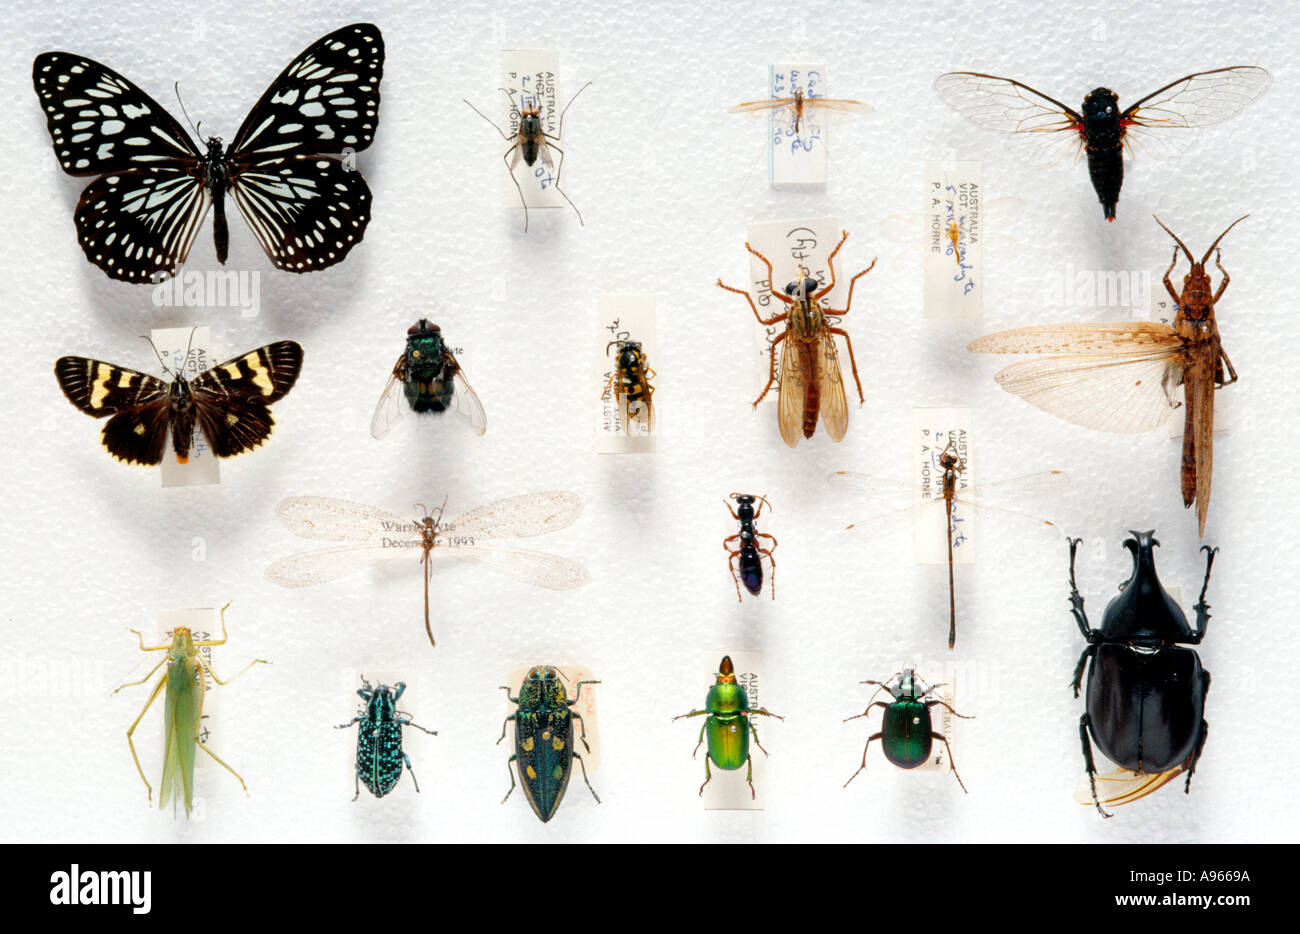 Pinned insect collection, miscellaneous insectsdead b - Stock Image